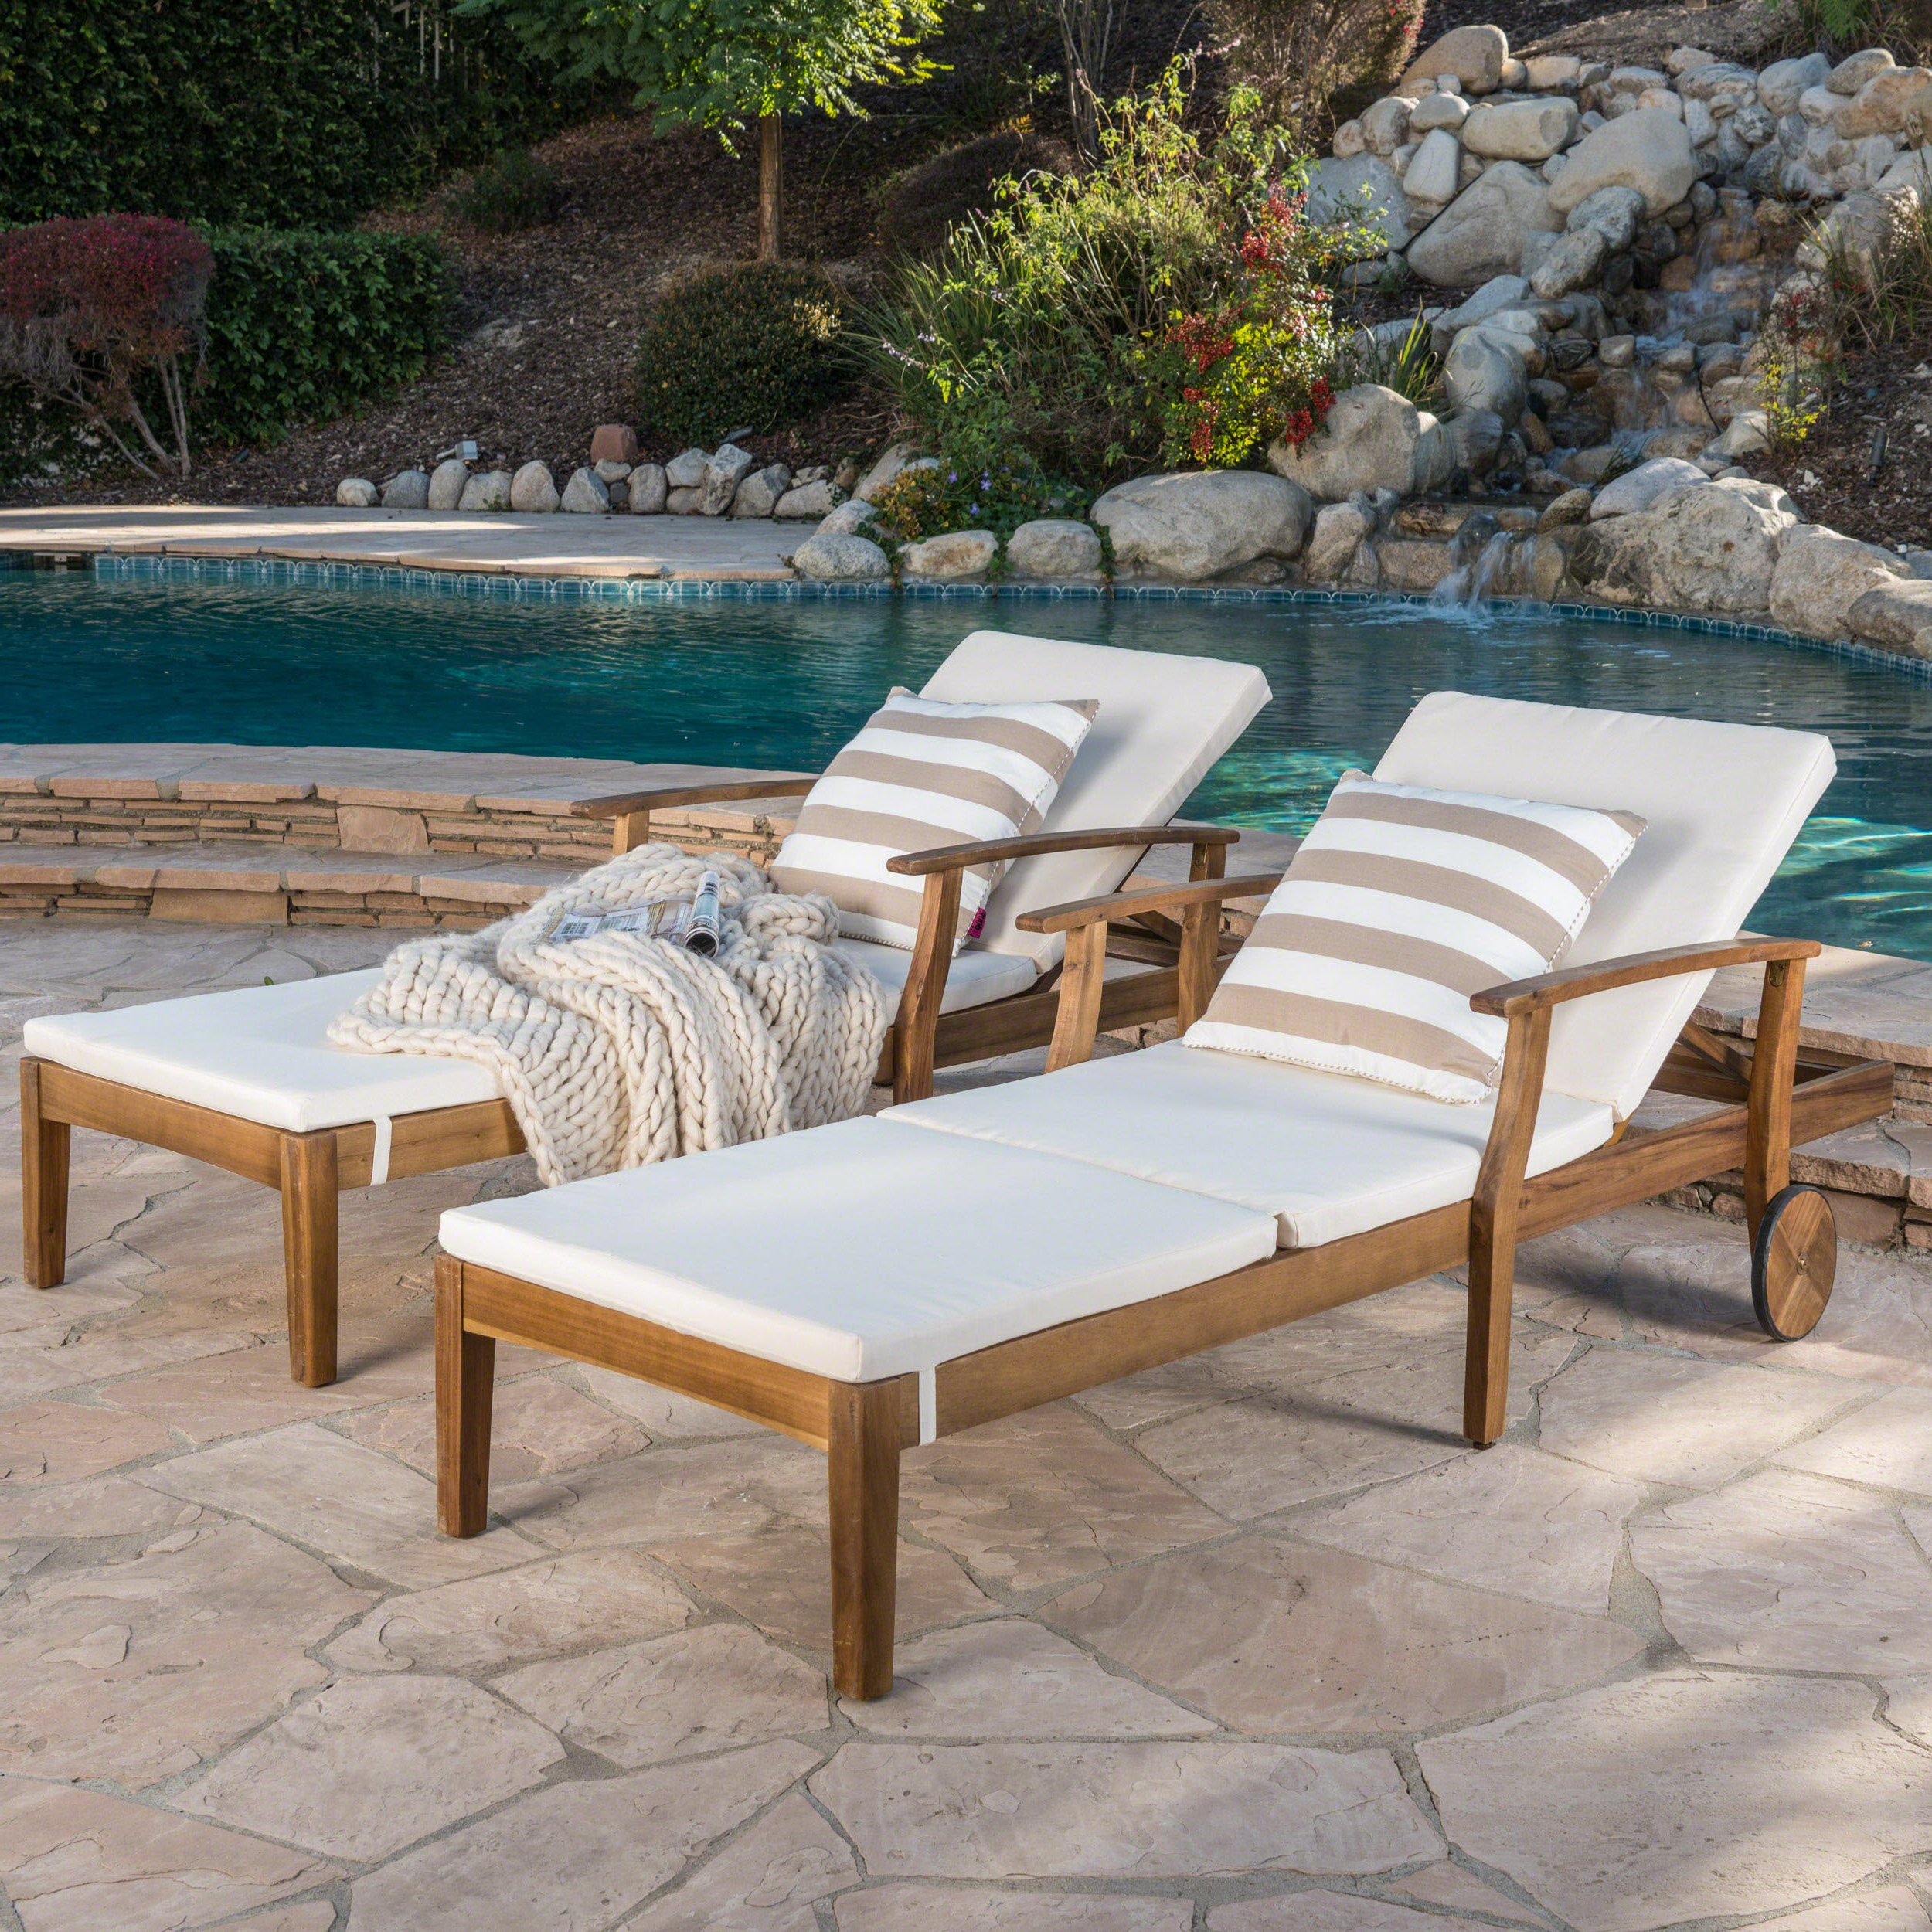 Perla Outdoor Acacia Wood Chaise Lounge With Cushion (Set Of 2) Christopher Knight Home Within Fashionable Outdoor 3 Piece Acacia Wood Chaise Lounge Sets (View 18 of 25)